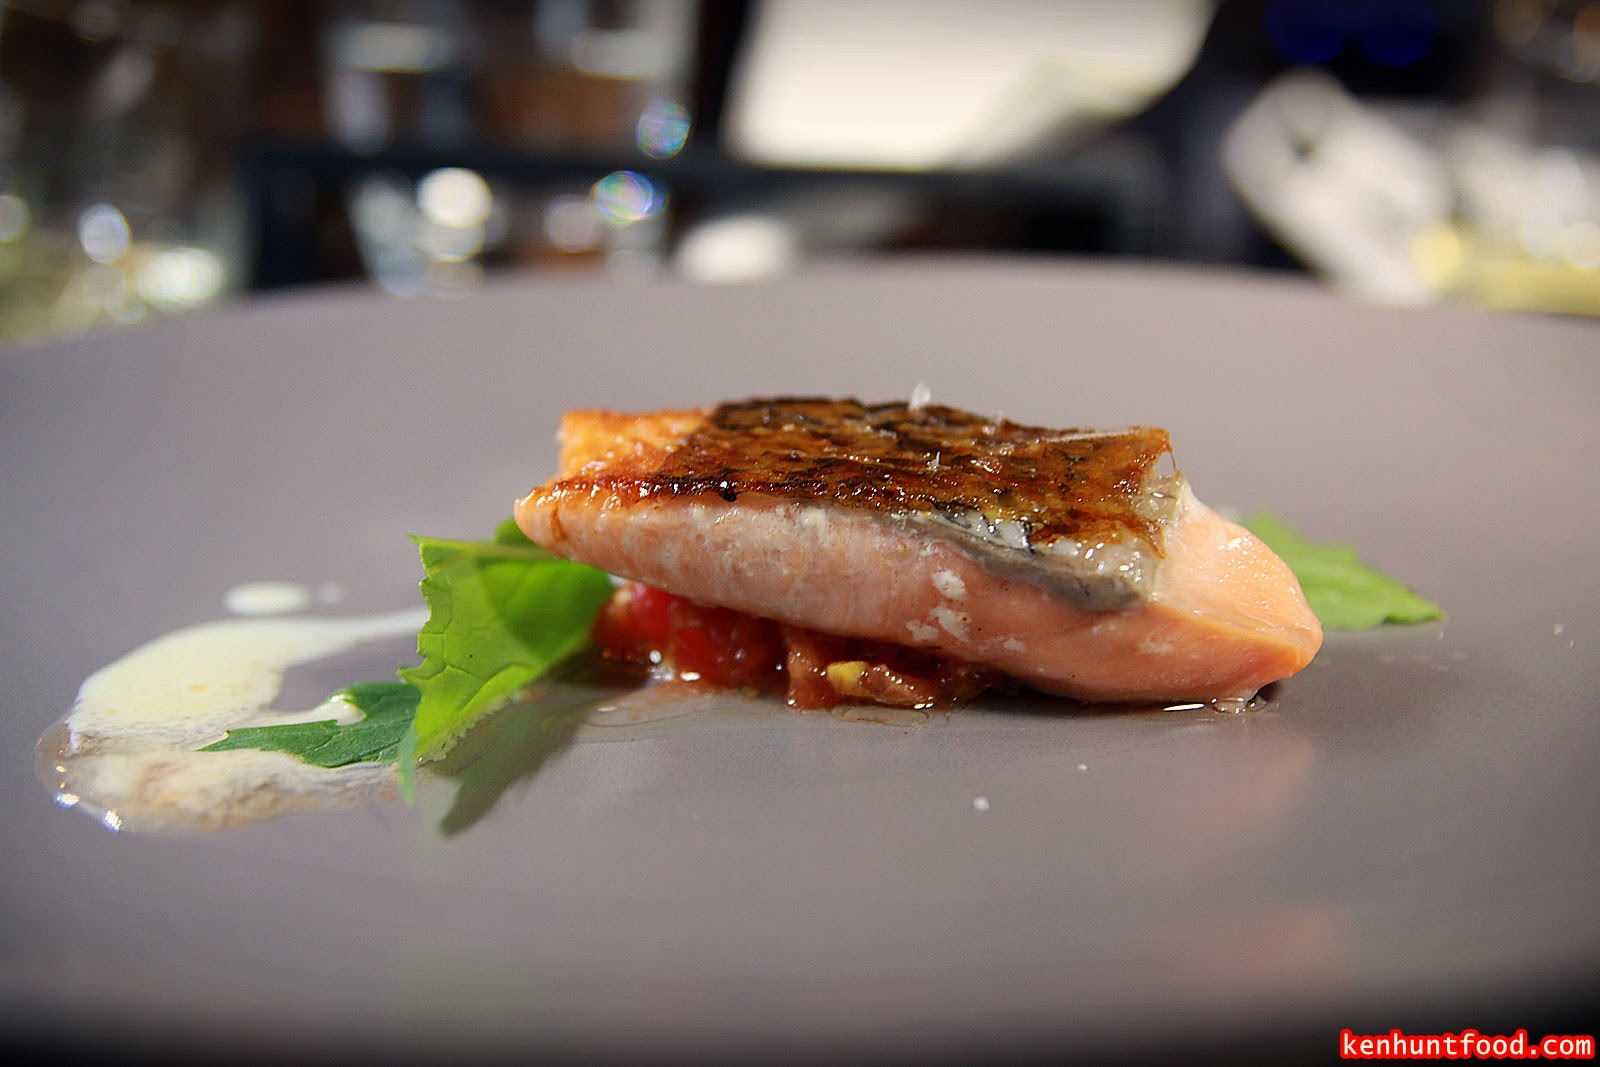 a maze omakase of molecular gastronomy nagore square sous vided salmon served chacee sauce mizuna leaves and dill milk